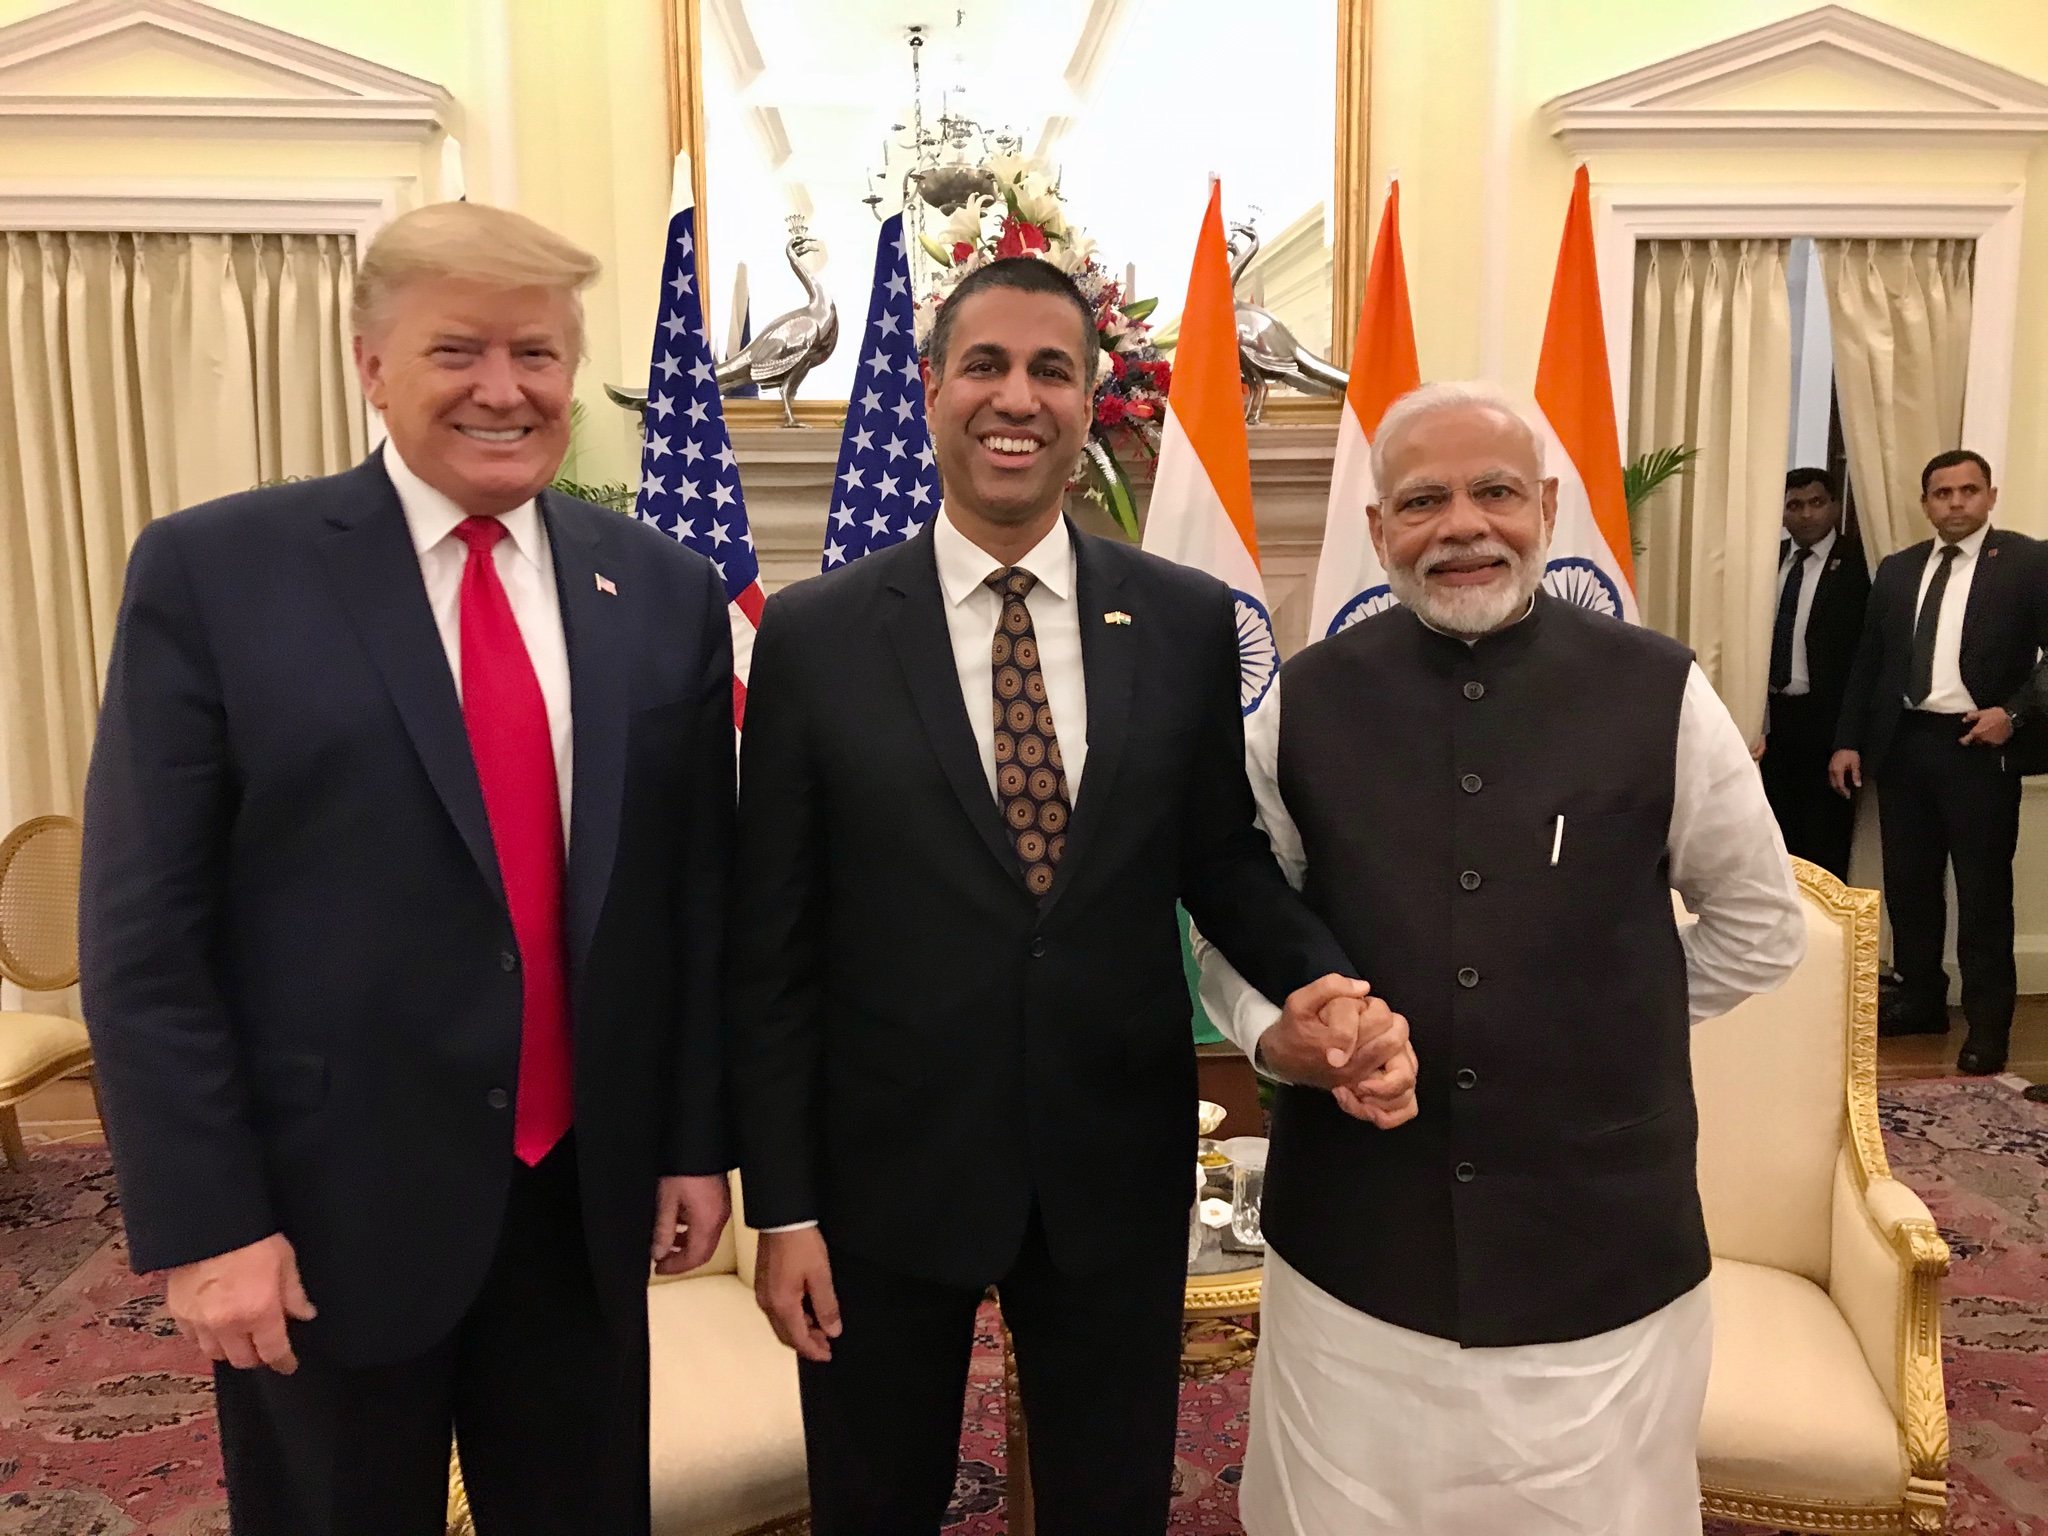 An honor to meet with @POTUS and Prime Minister @narendramodi today during bilateral United States-India meetings! Among other things, the discussion focused on how we can work together to advance #5G's potential to deliver connectivity, promote innovation, and create jobs. 🇺🇸🇮🇳 https://t.co/UqrrwRhcba